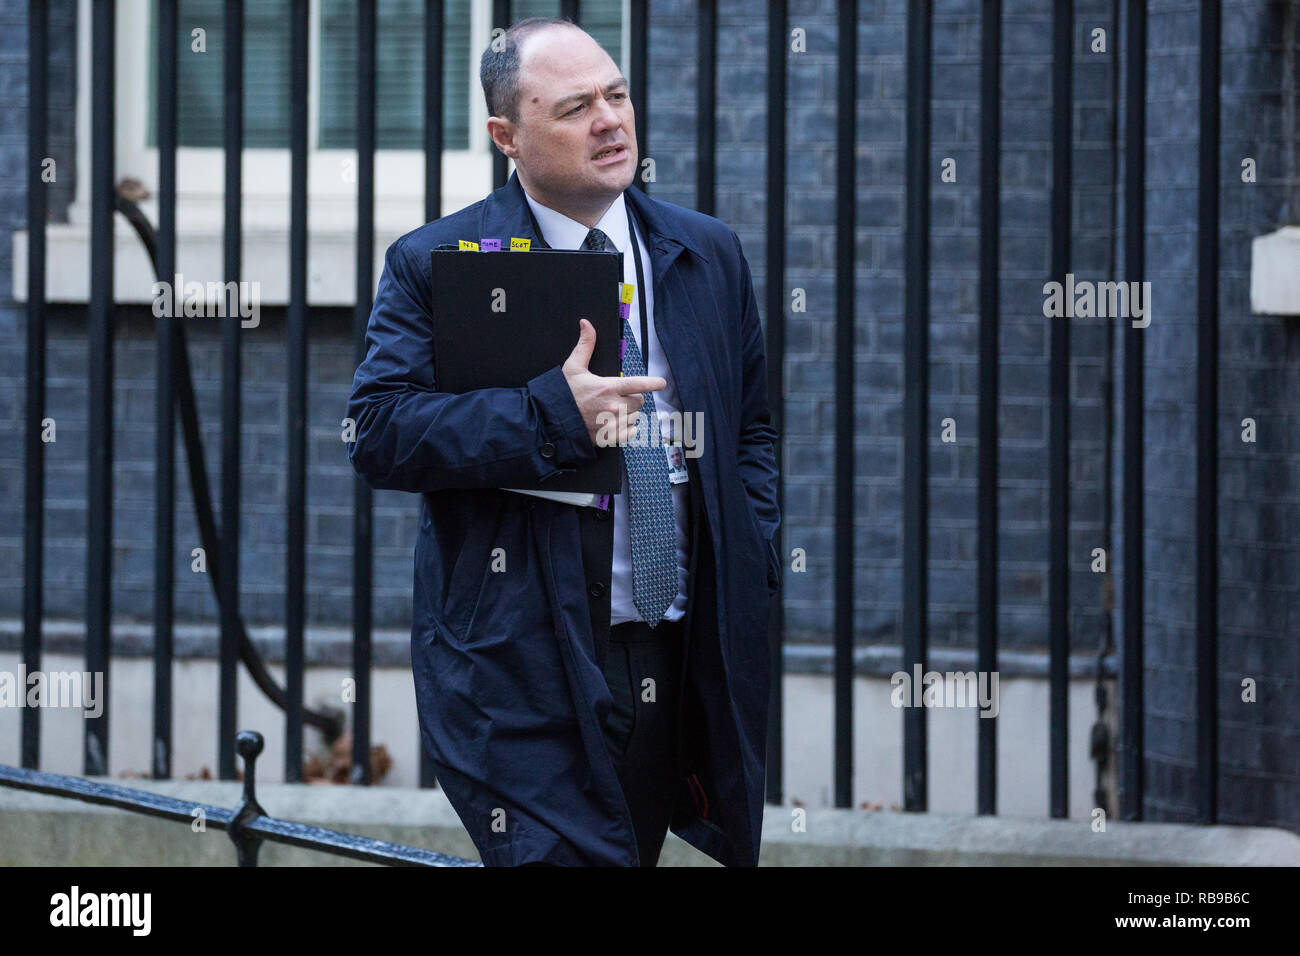 London, UK. 8th January, 2019. James Slack, No. 10 Official Spokesman, leaves 10 Downing Street following the first Cabinet meeting since the Christmas recess. Credit: Mark Kerrison/Alamy Live News - Stock Image